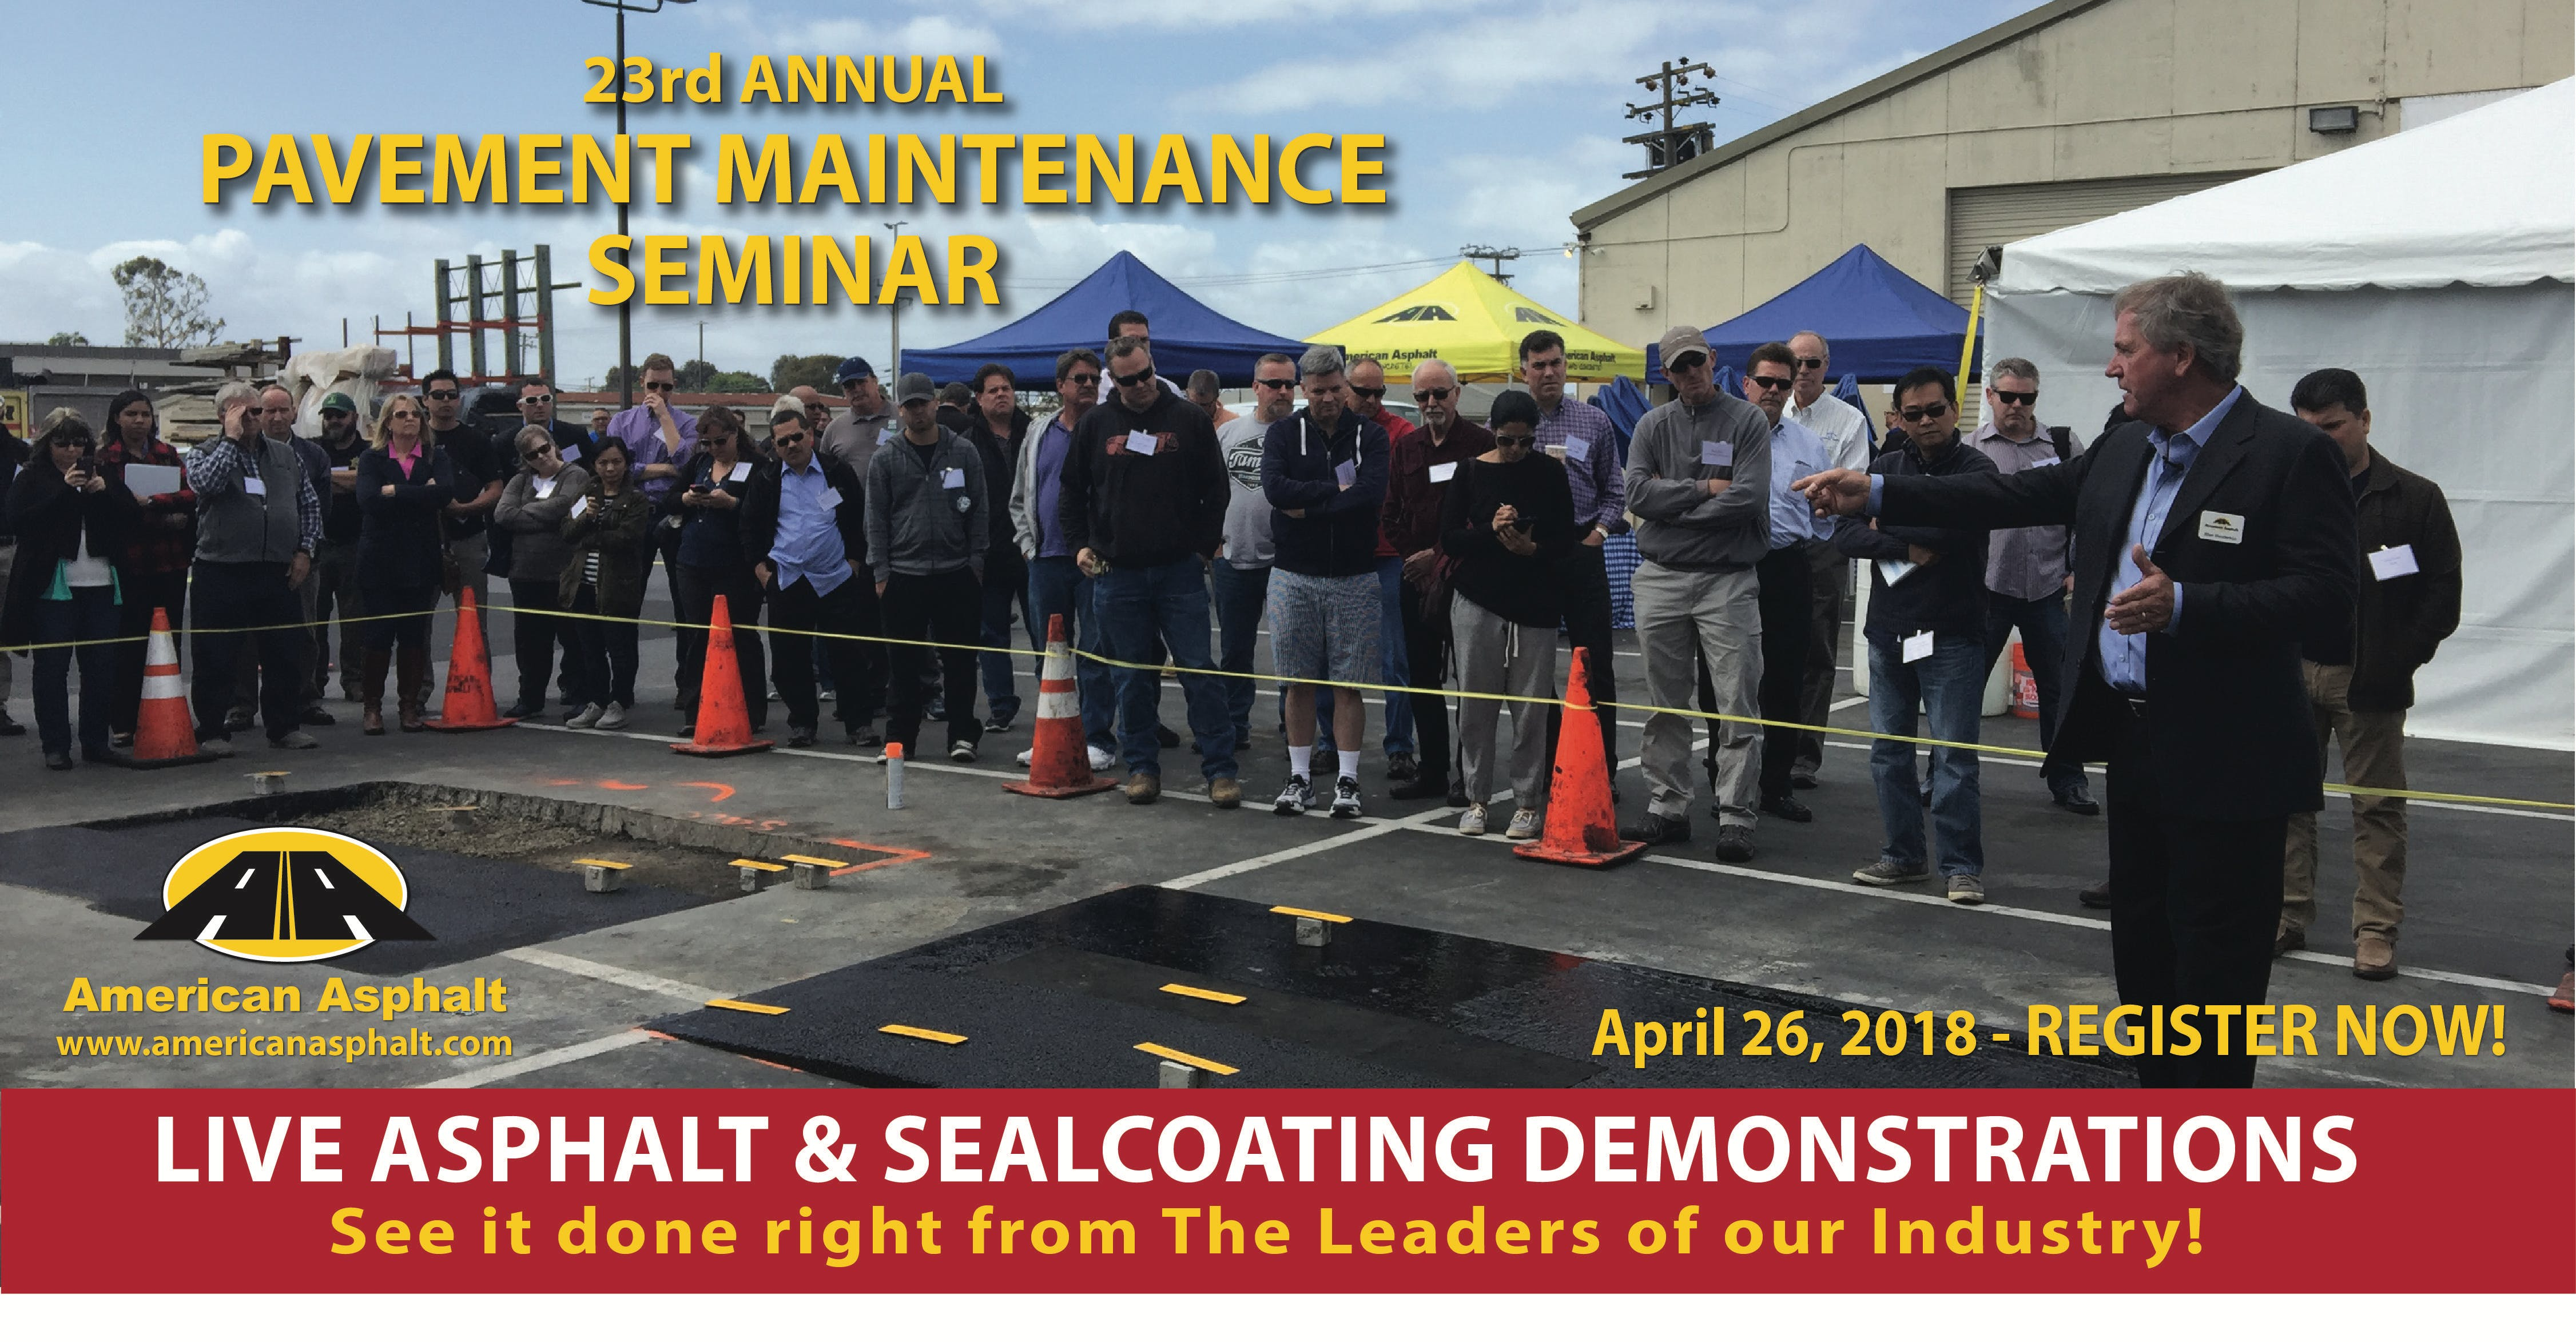 American Asphalt's 23rd Annual Pavement Maint